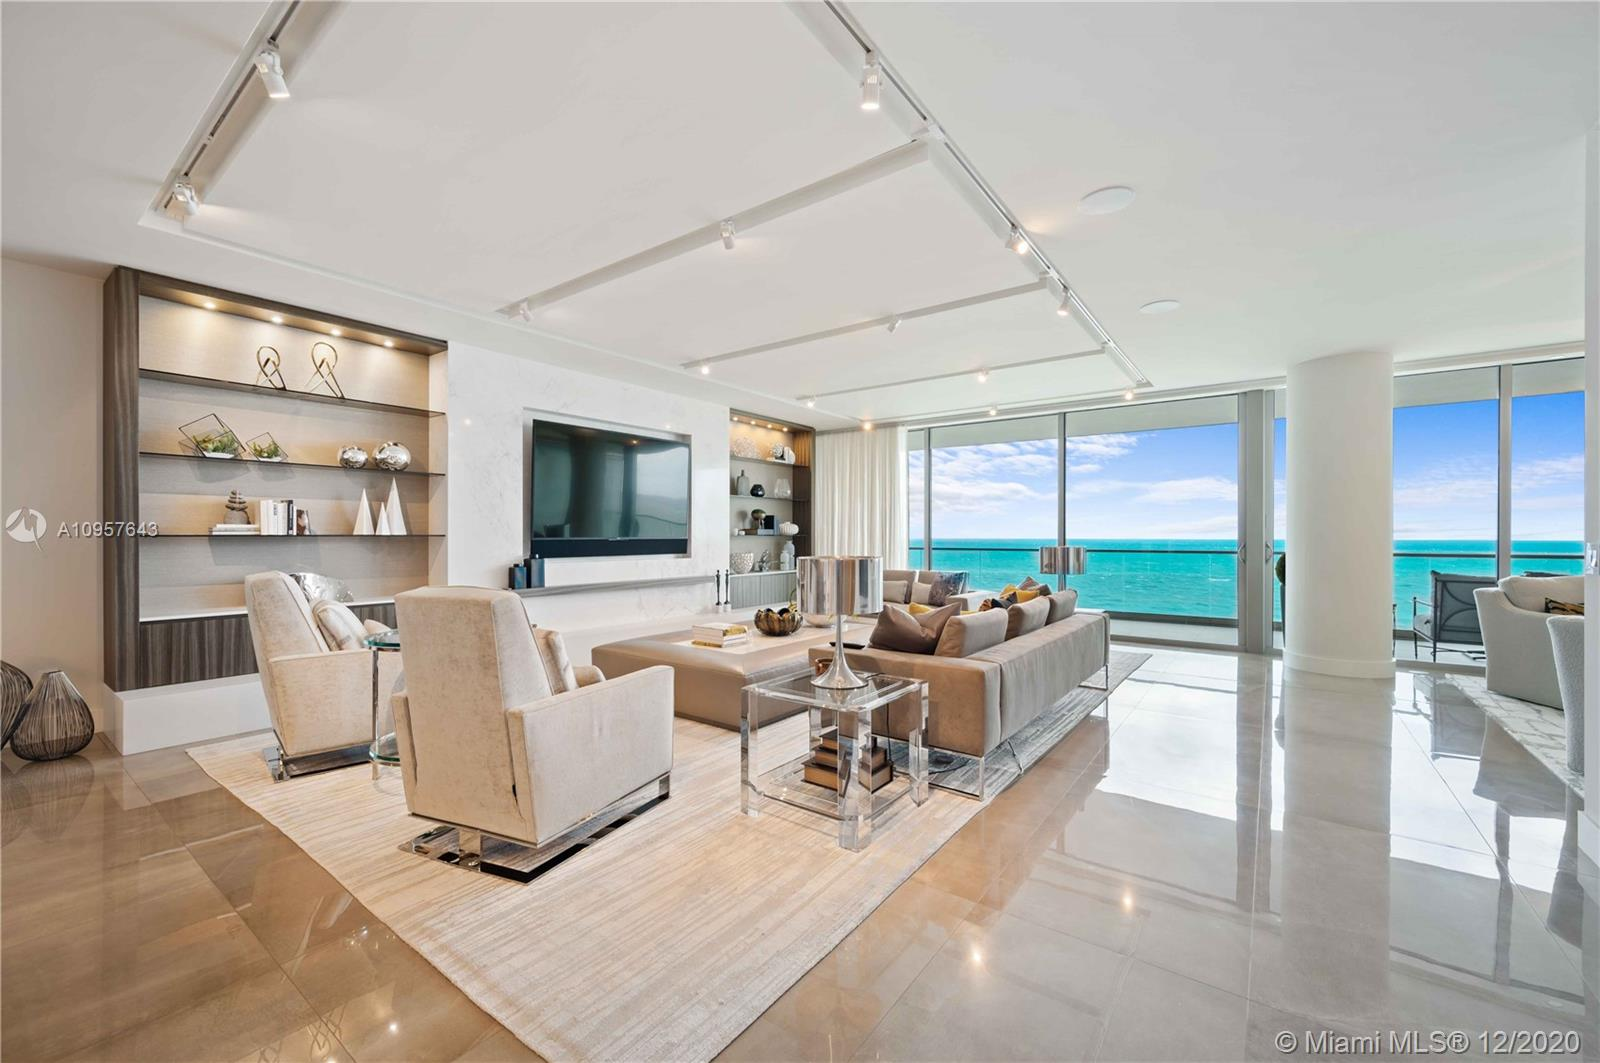 Welcome to the epitome of privacy and luxury at its finest! Your new home awaits at the world-renown Oceana Bal Harbour. This two-bedroom plus a den, set up for occasional guests, and three-bath condominium is a spacious, turn-key, Steven G. Interiors designed extravagance. The second bedroom is intentionally open to maximize the direct Atlantic Ocean views. The kitchen features Dada cabinetry, a Gaggenau two-zone epicurean wine cellar and appliances, and gorgeous imported stone countertops. Bathrooms are finished with chic cabinets by Piero Lissoni and other exceptional touches. Ten-foot ceilings and a generously sized balcony complete this breathtaking residence, a true definition of the prized oceanfront Bal Harbour lifestyle. First-class amenities include service on the beach.